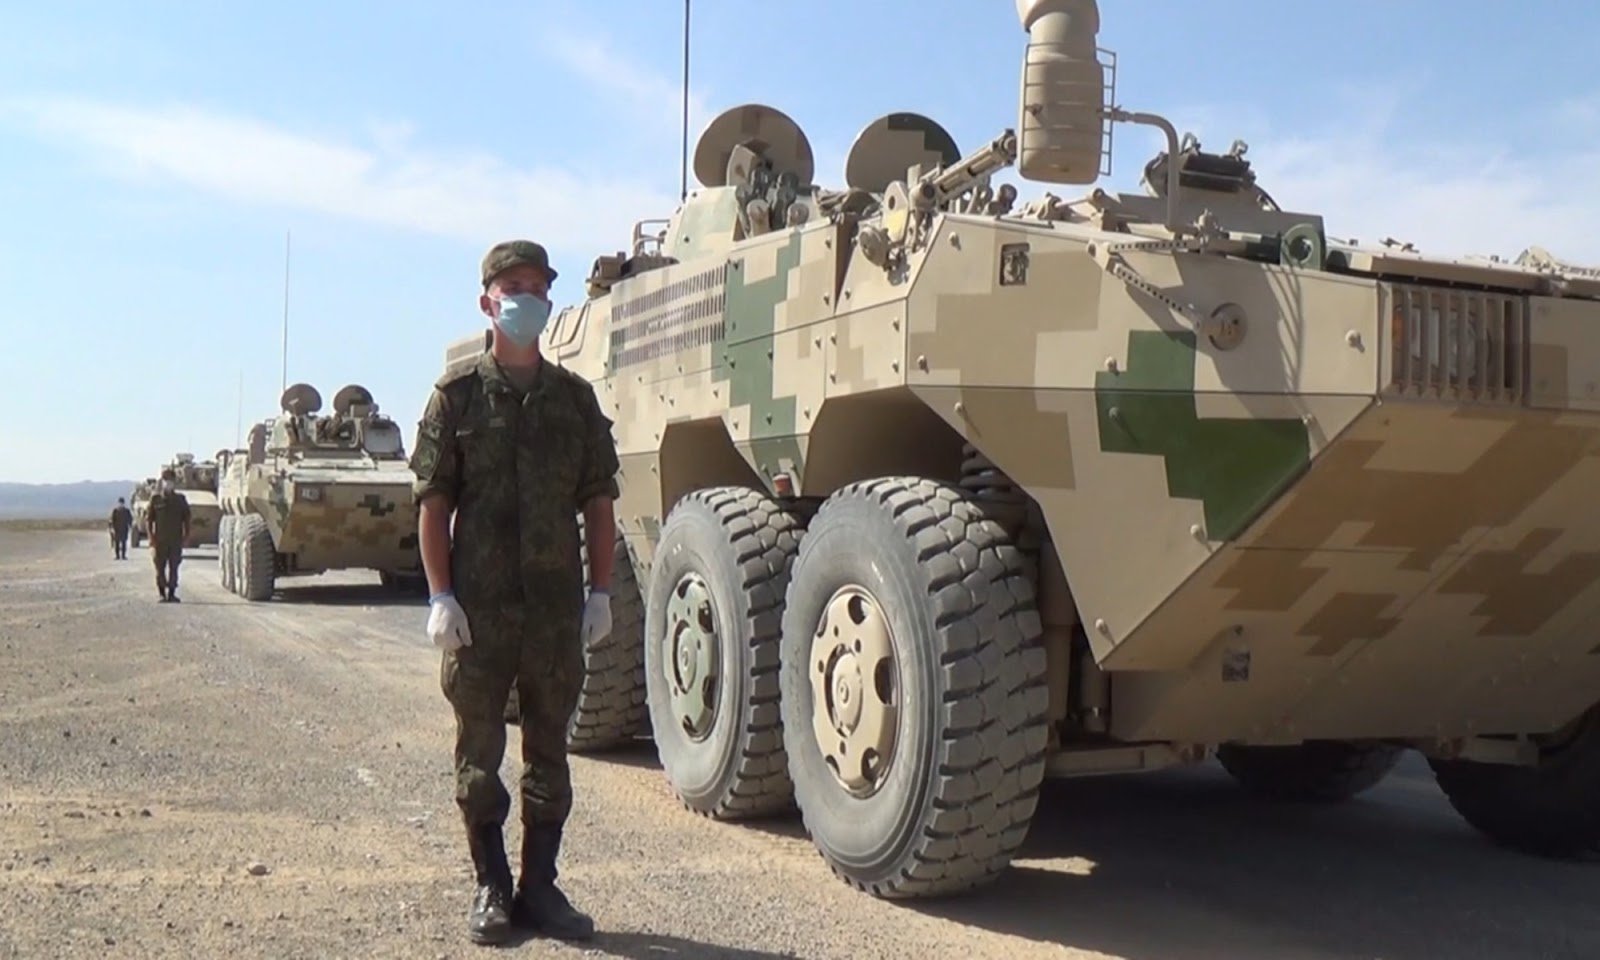 Russian troops learn how to drive and use weapons on a medium wheeled tank and an armored vehicle of the PLA in preparation for Zapad/Interaction-2021 exercise in Northwest China's Ningxia Hui Autonomous Region in August. Photo: Screenshot from the website of Russia's Defense Ministry